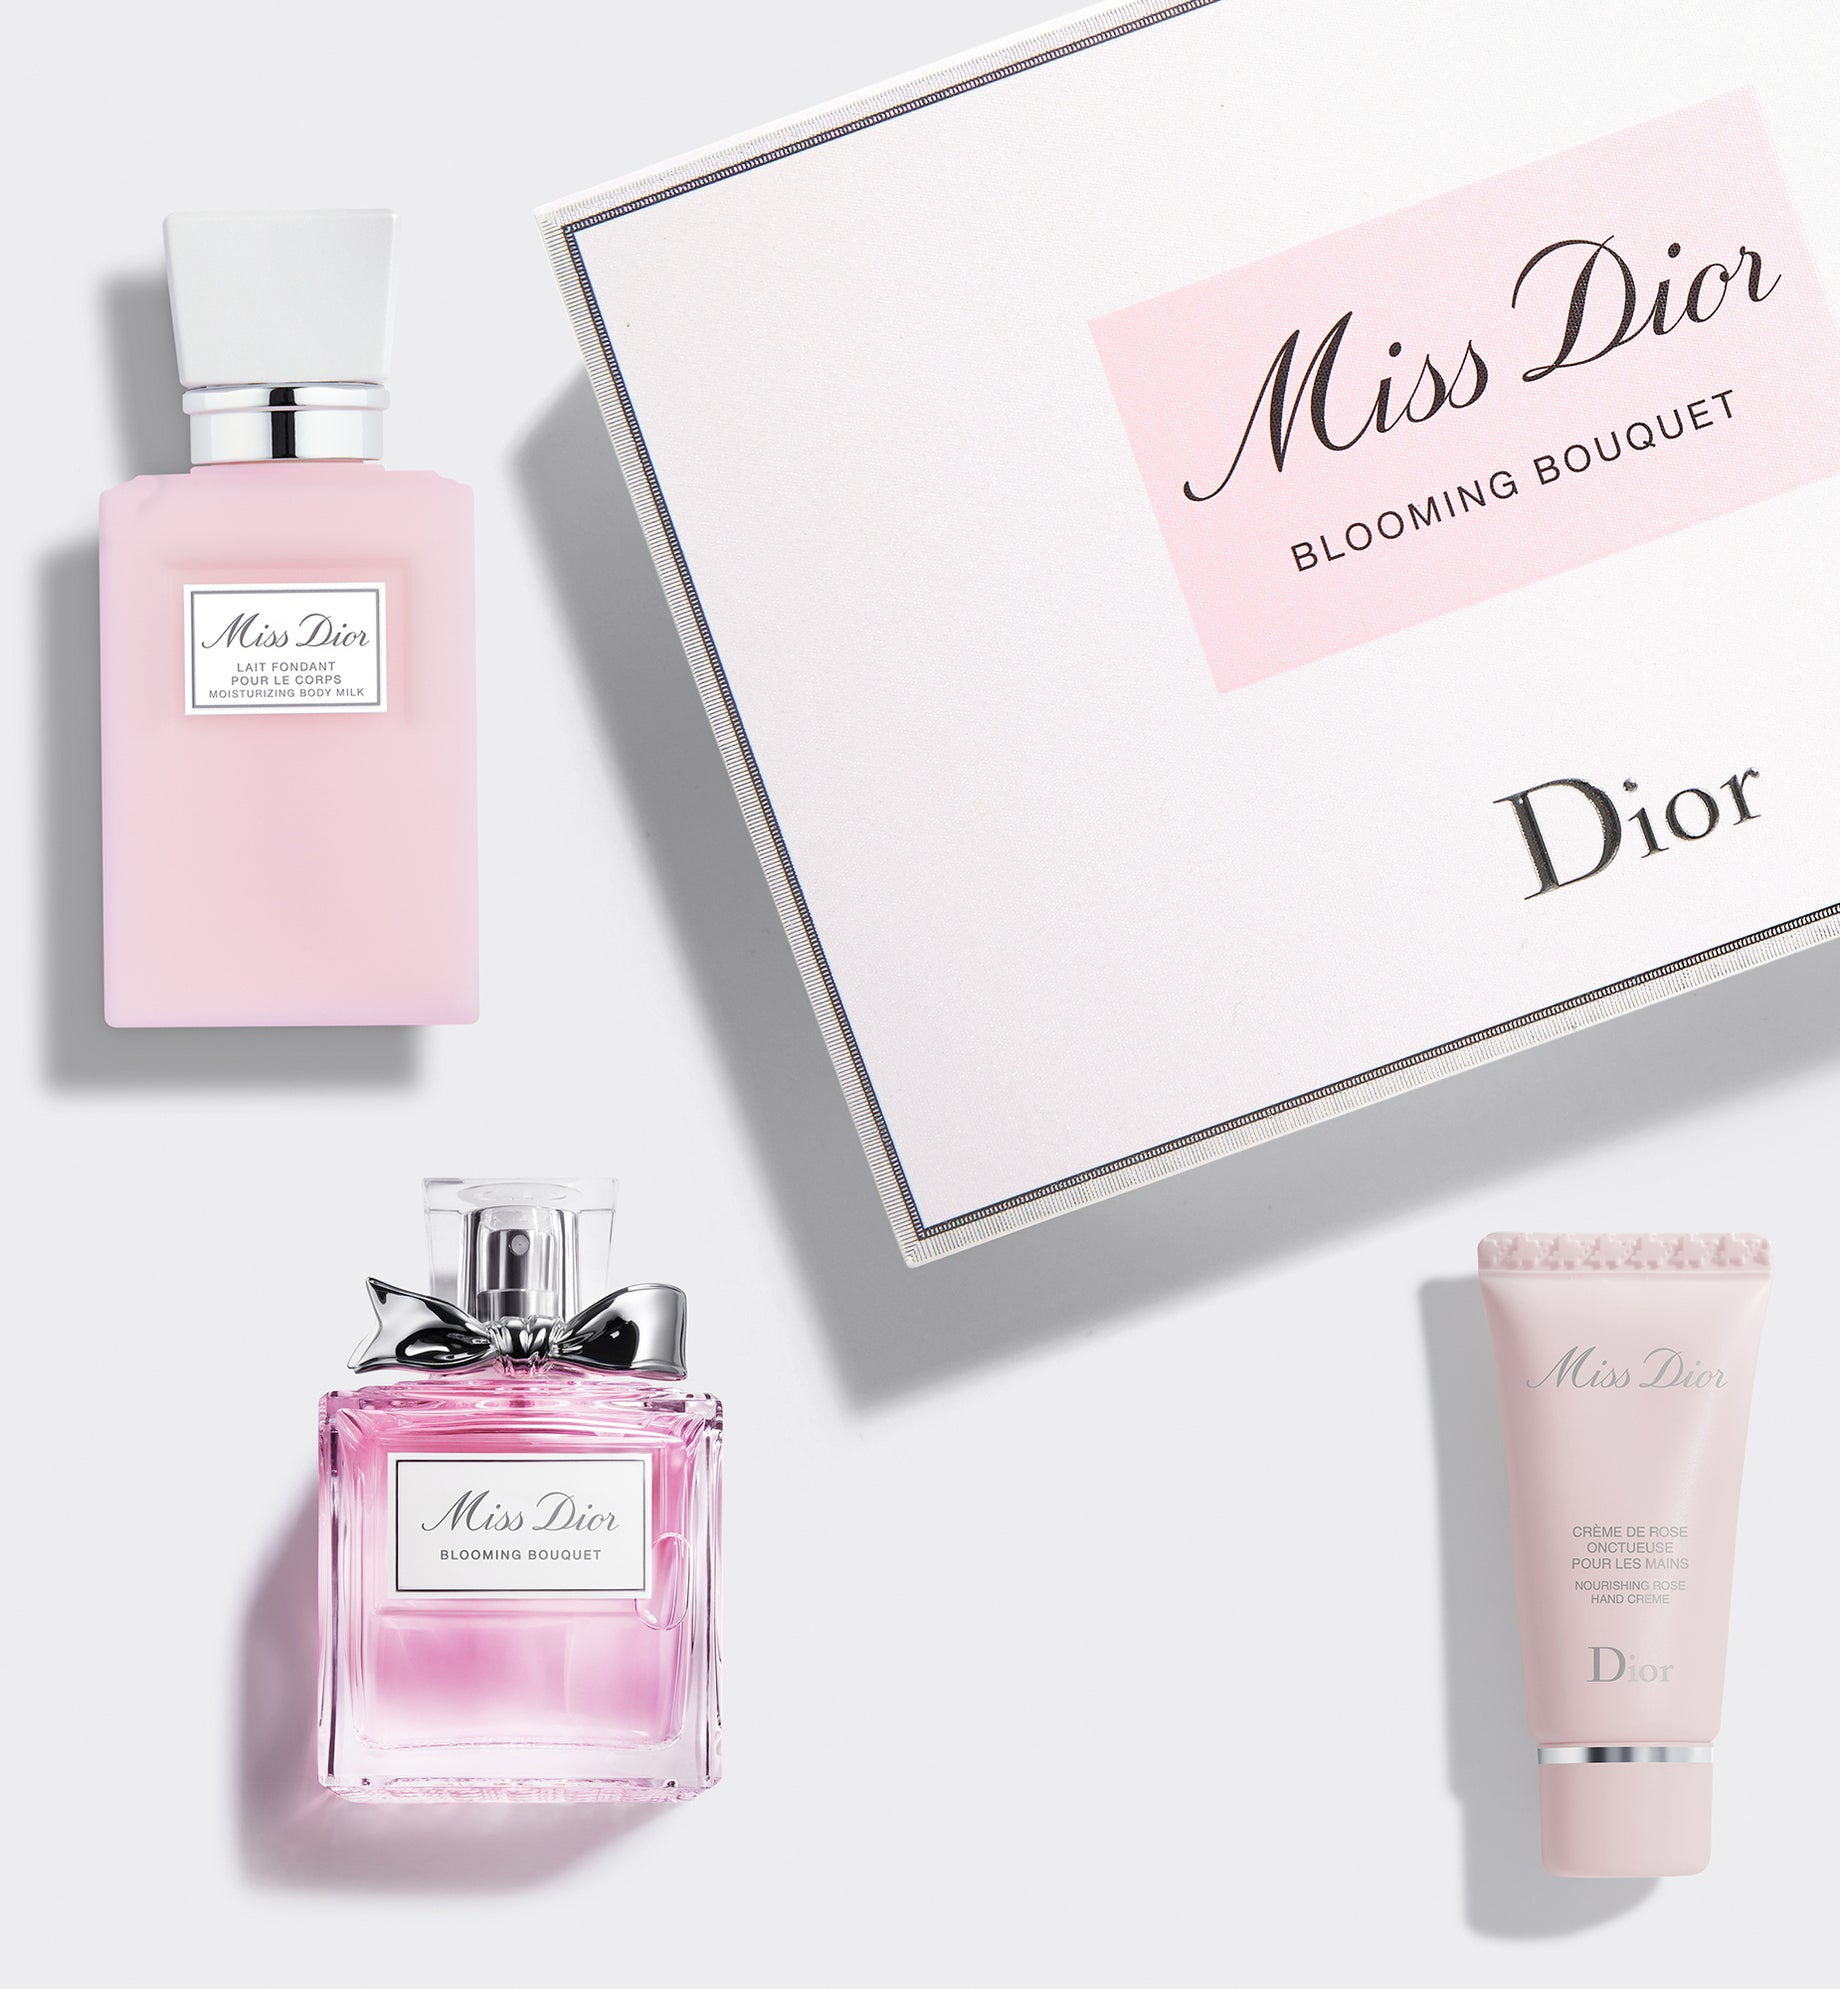 MISS DIOR BLOOMING BOUQUET 50ml OFFER: Indulge yourself with a complimentary body lotion and hand cream